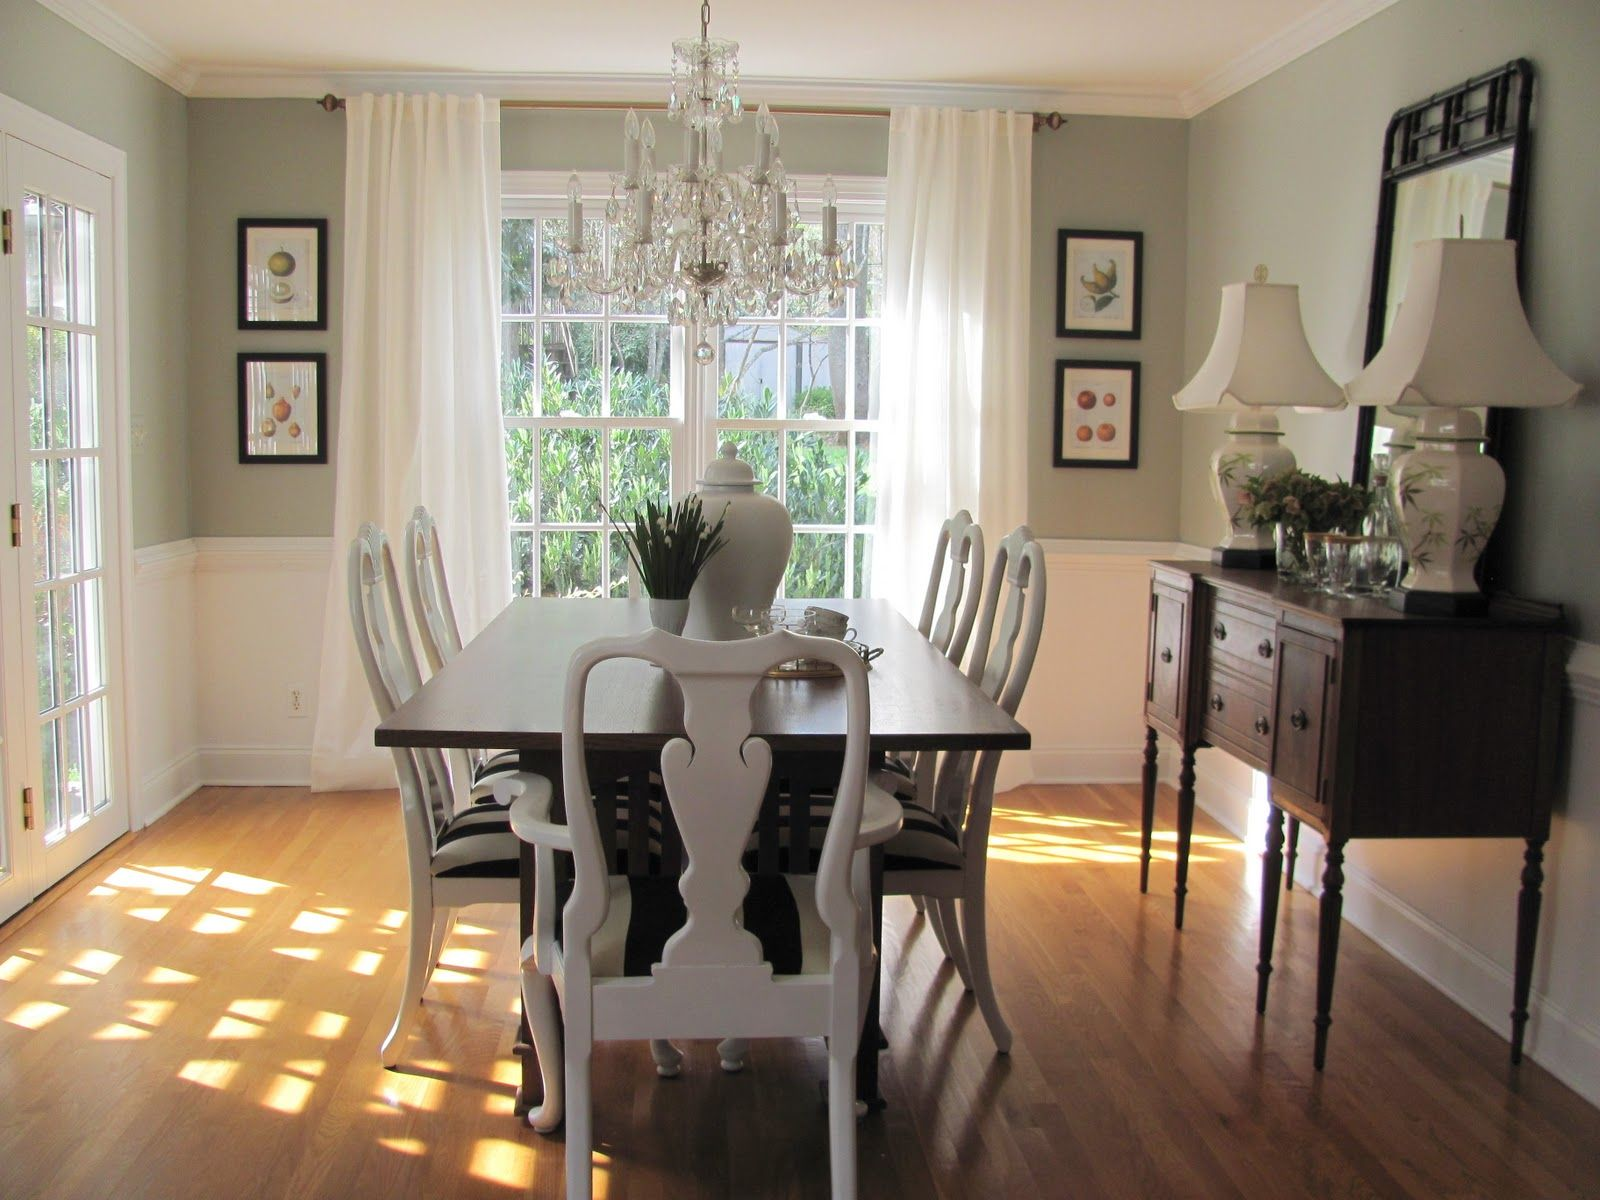 small living room paint ideas what are the best colors to a for dining with chair rail 1 13 kaartenstemp nl google search forever rh pinterest com bedroom